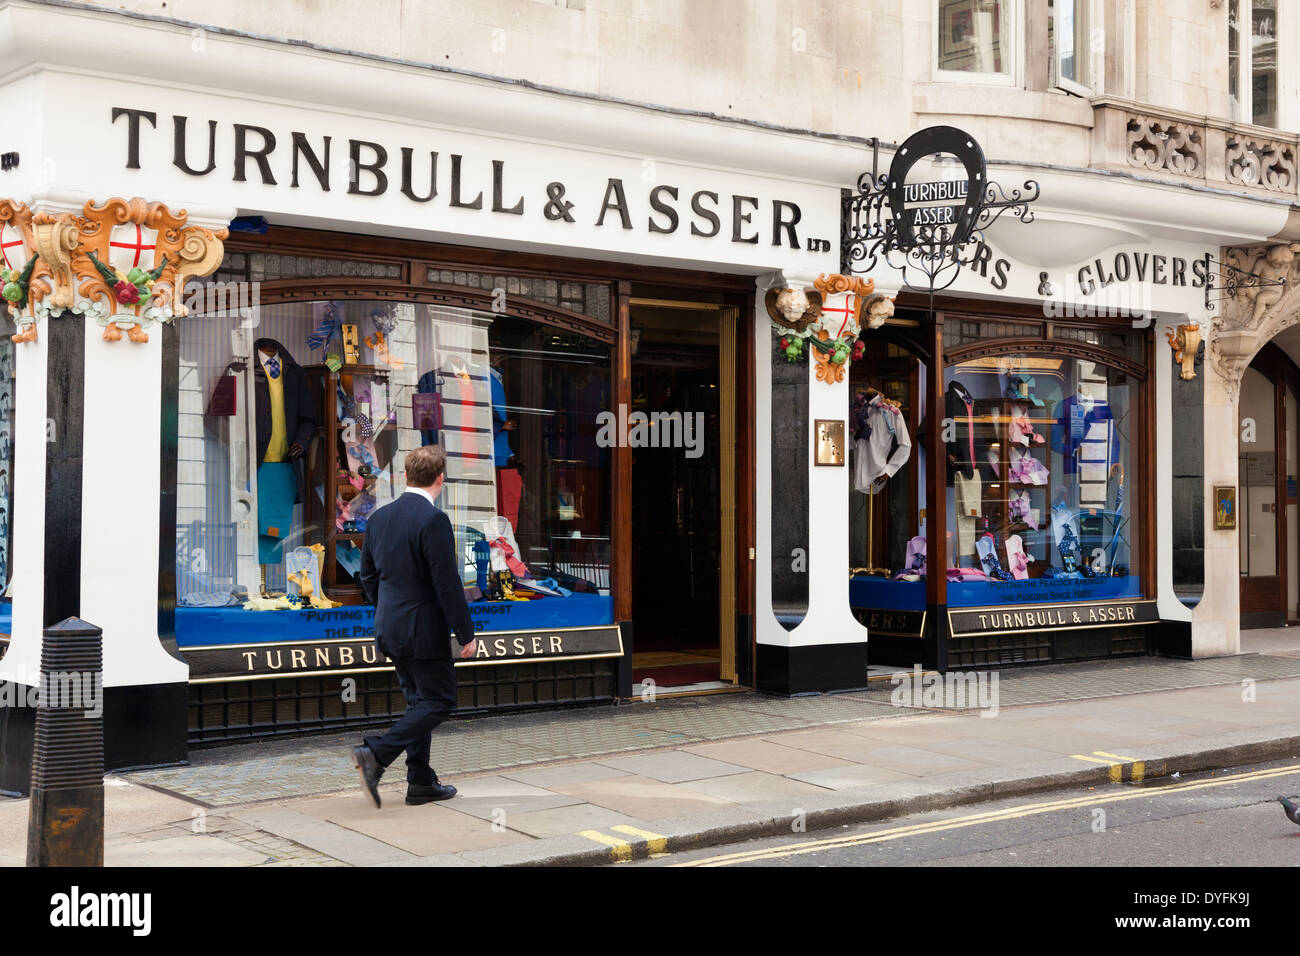 Turnbull   Asser Stock Photos   Turnbull   Asser Stock Images - Alamy 65a9e23a082f7